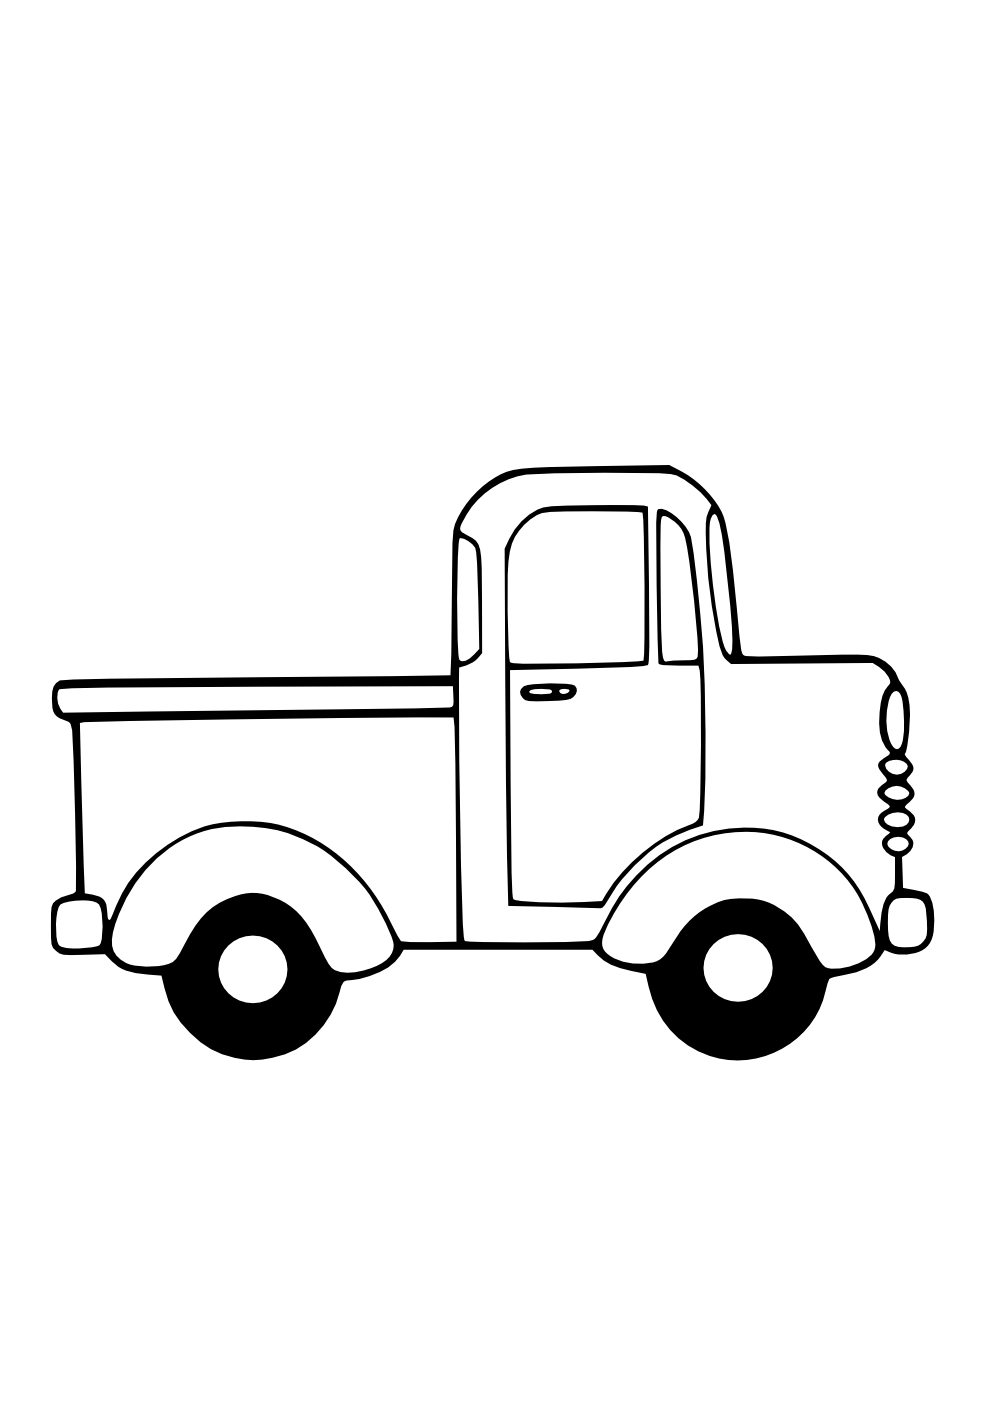 Book clipart free black and white banner transparent Truck Clipart Black And White | Clipart Panda - Free Clipart Images ... banner transparent